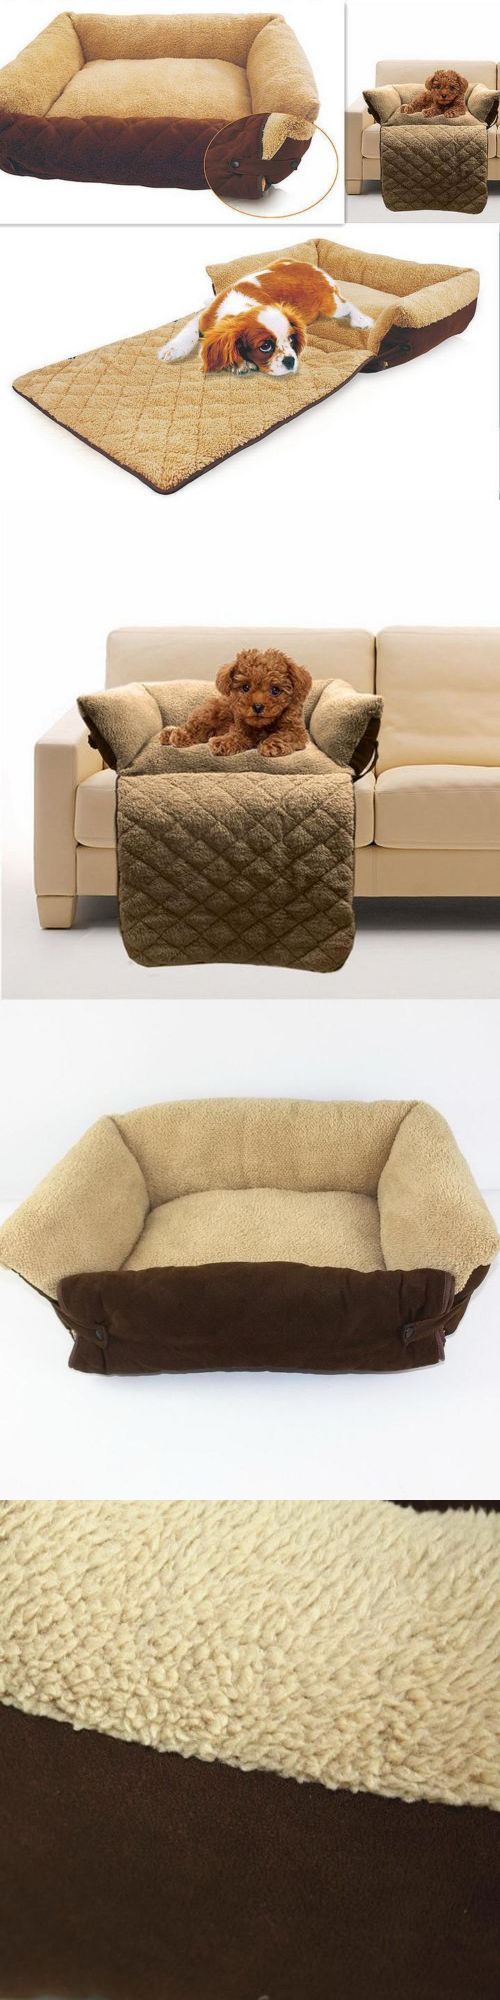 Sofas Para Perros Baratos Dog Cat Bed Soft Warm Pet Cushion Puppy Sofa Co Exclusively